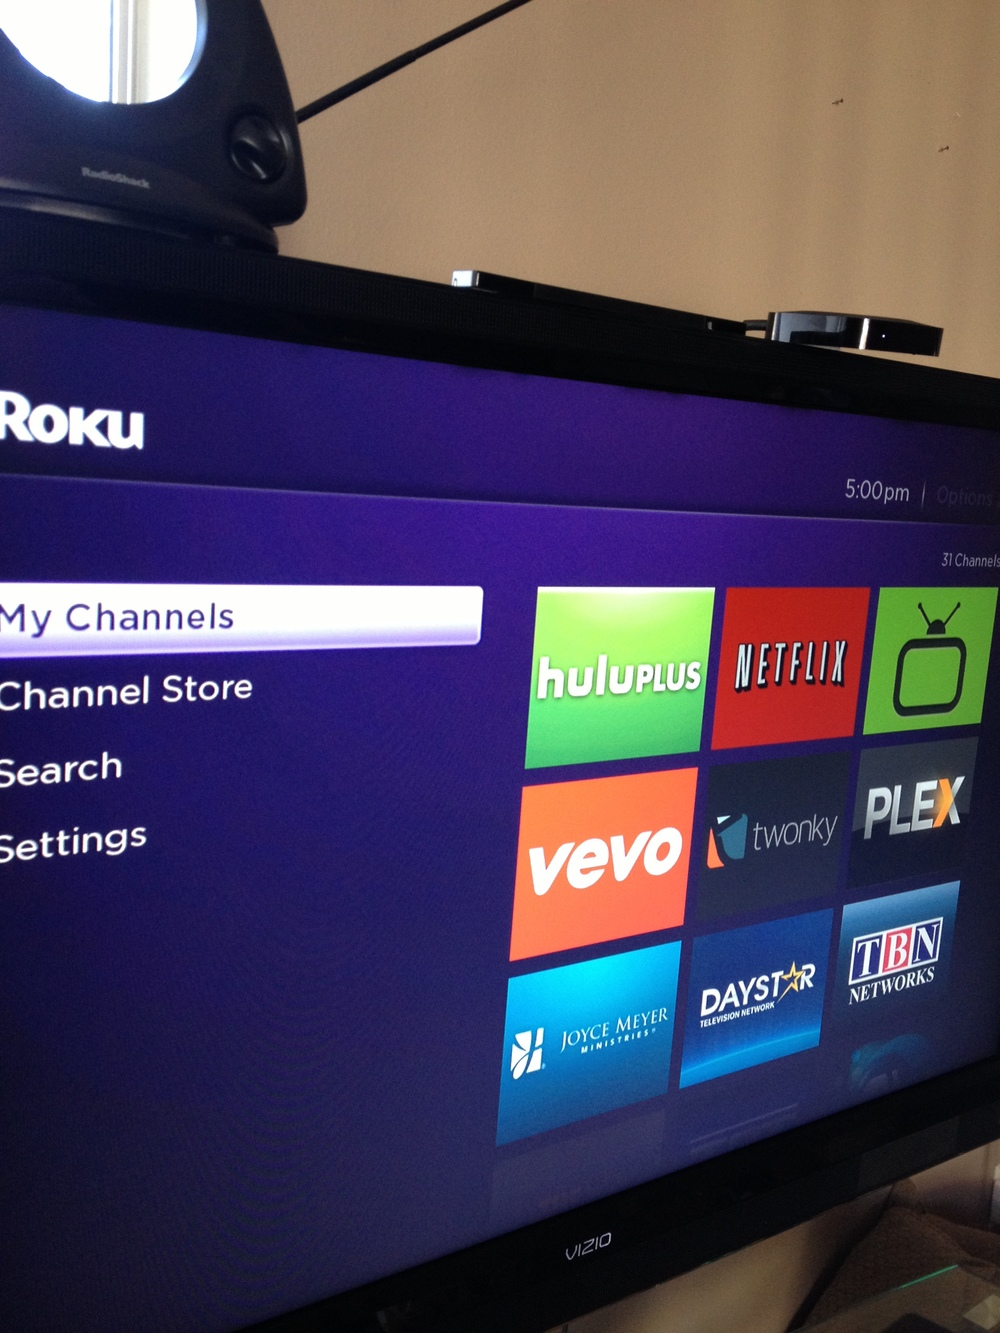 A few of our Roku channels